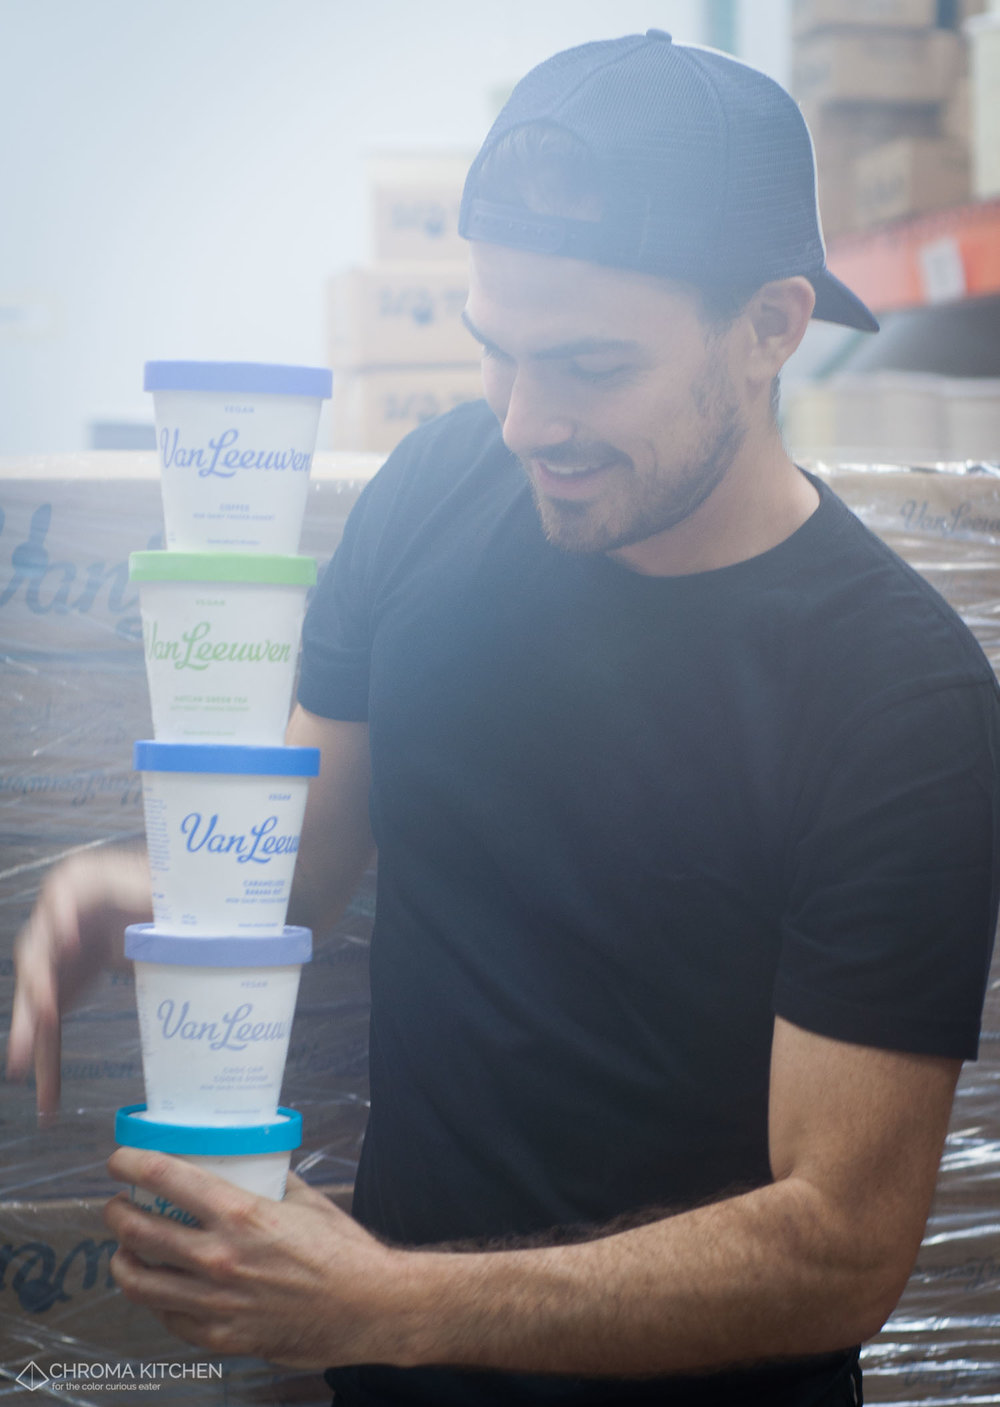 Van Leeuwen's new vegan pints on display in the walk-in freezer